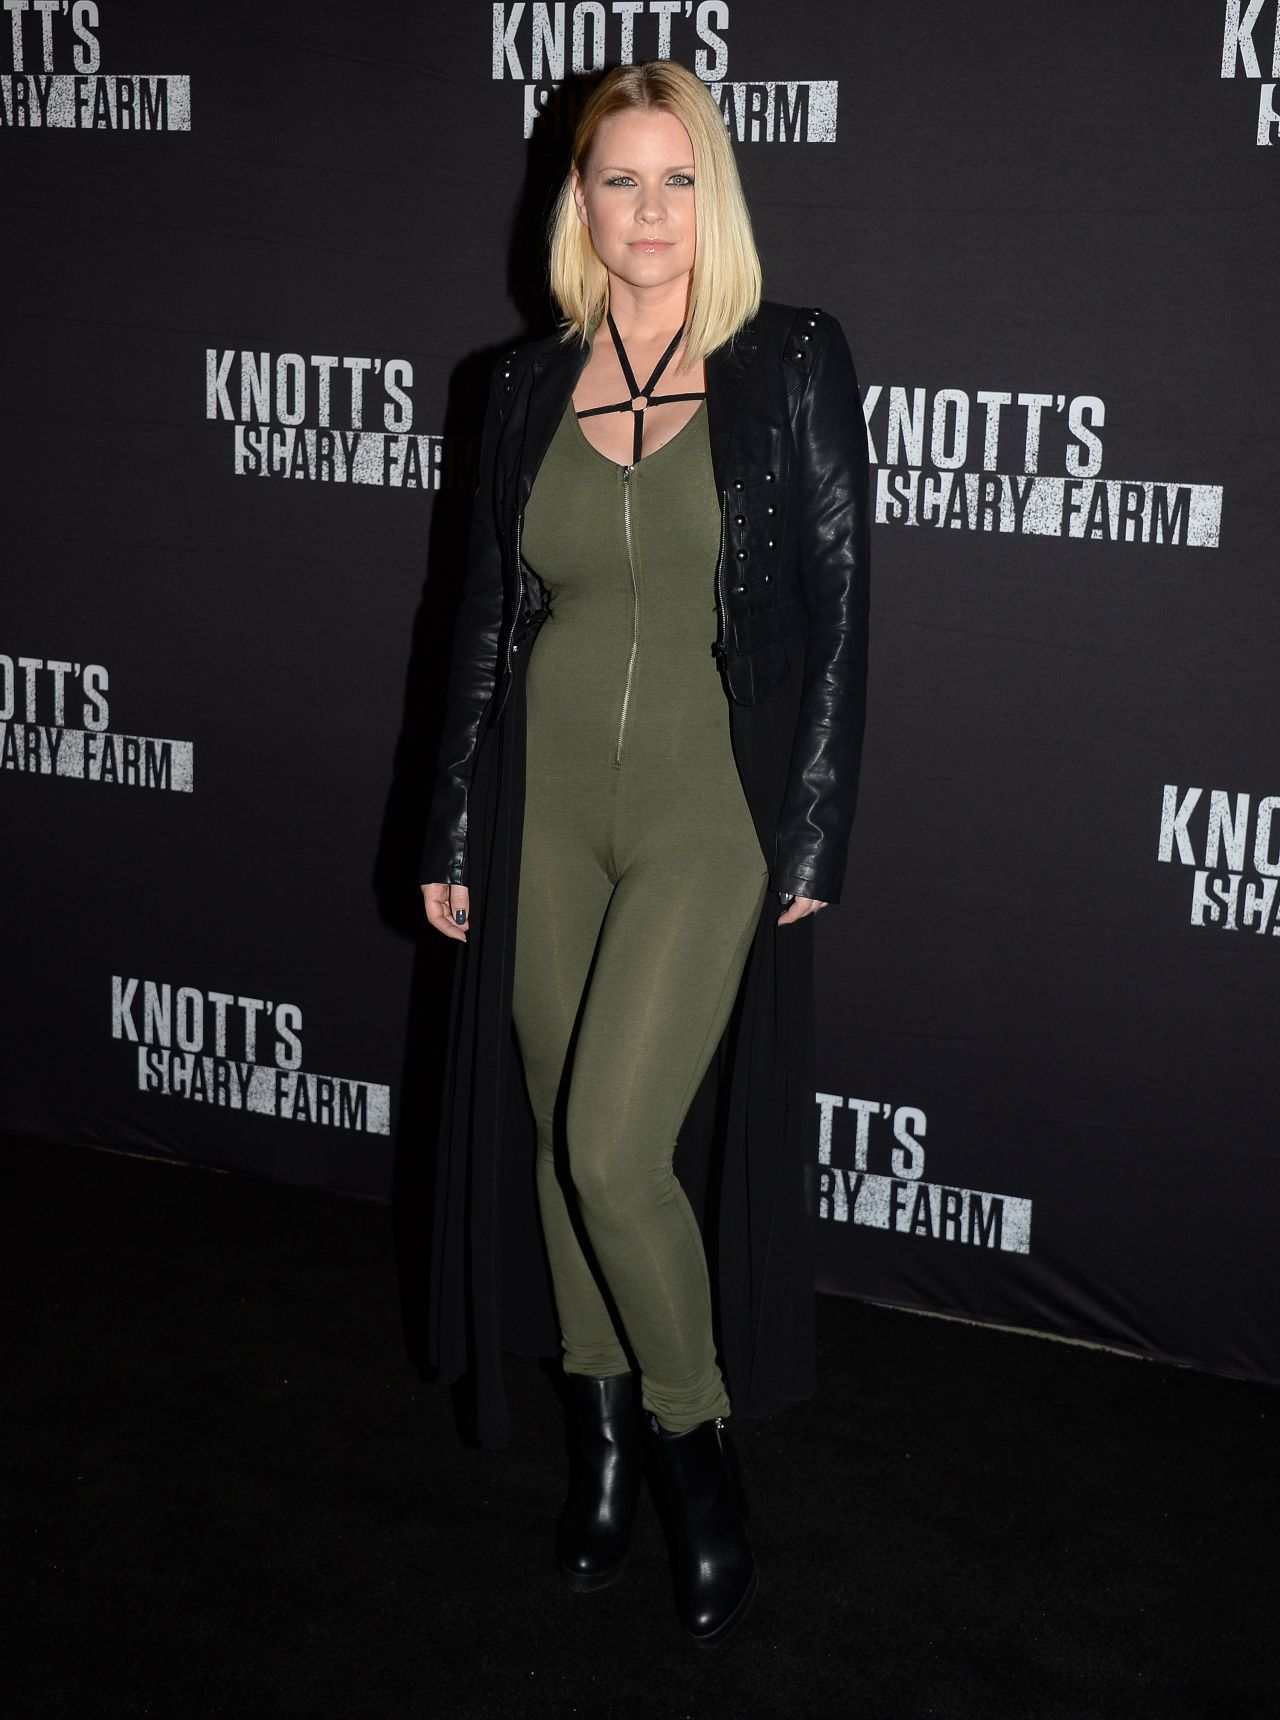 Carrie Keagan Knotts Scary Farm Opening Night in Buena Park CA Sep